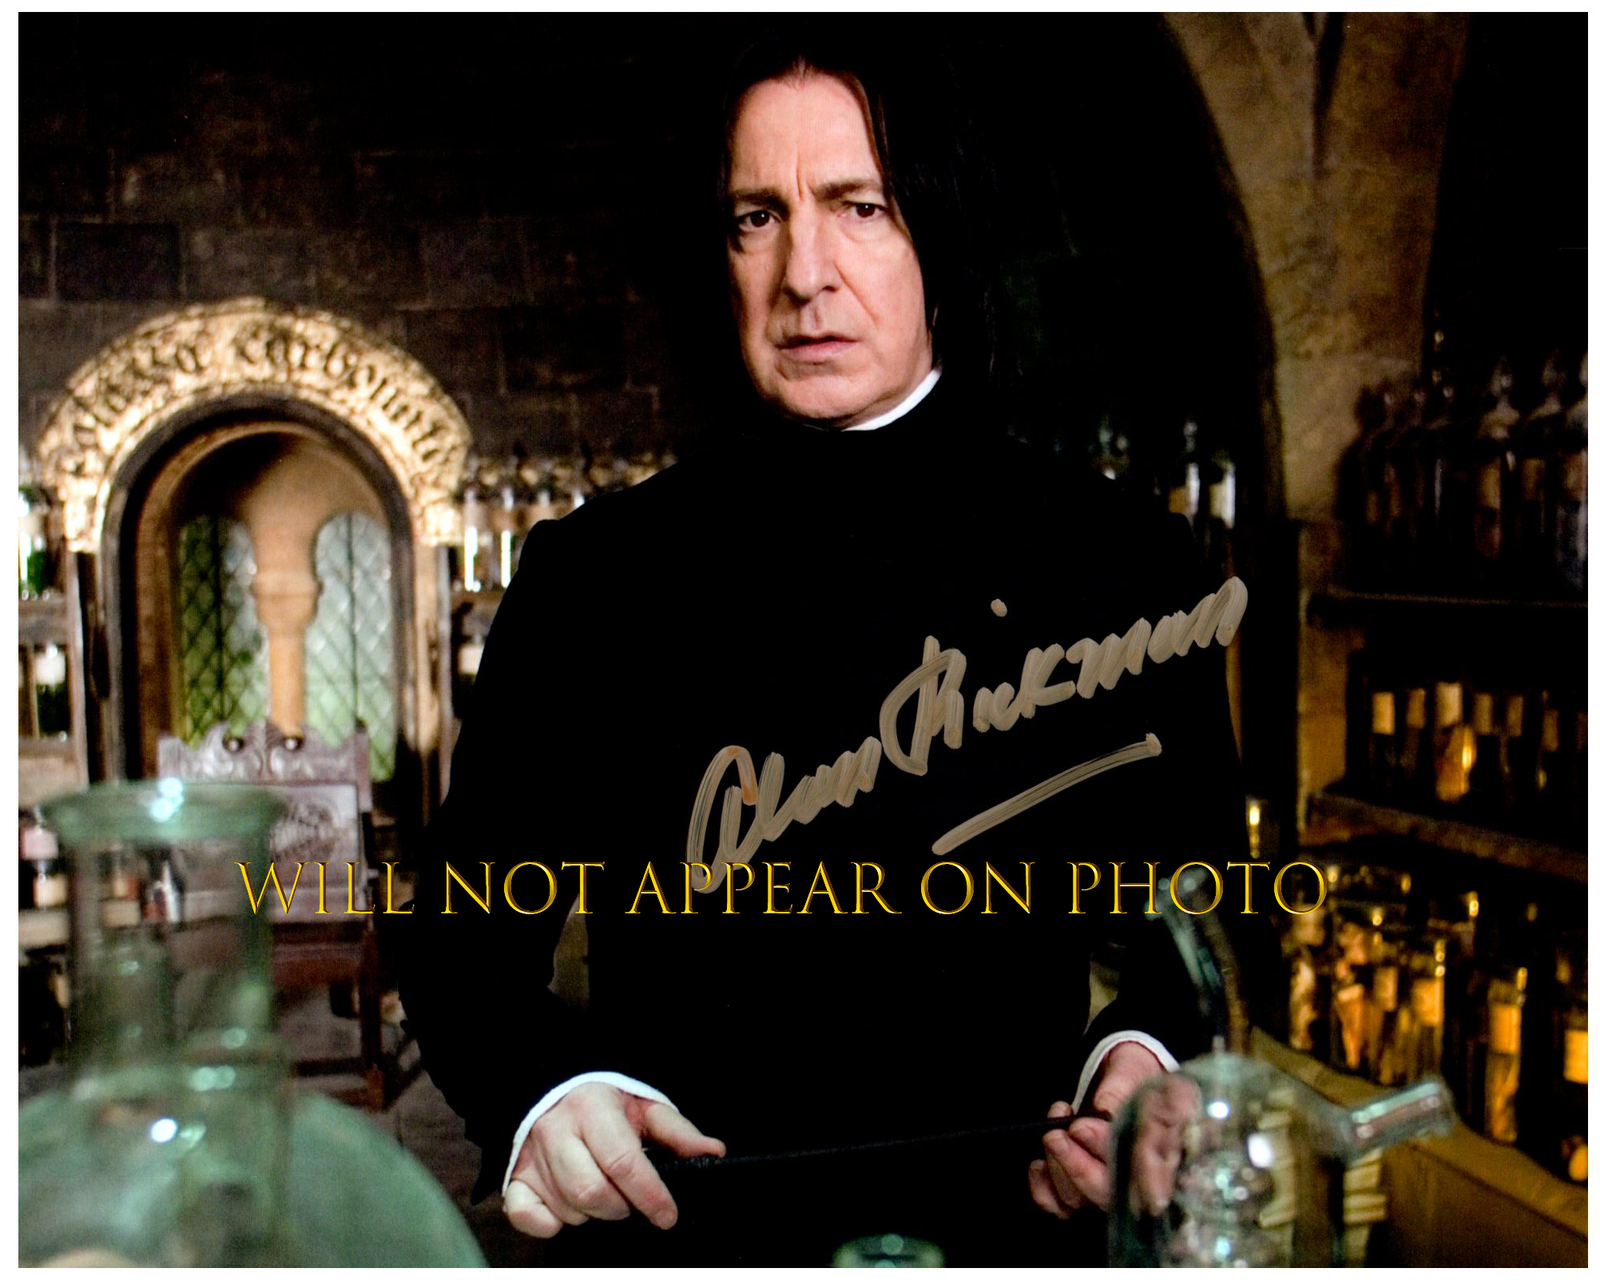 Primary image for ALAN RICKMAN Signed Autographed 8X10 Photo w/ Certificate of Authenticity